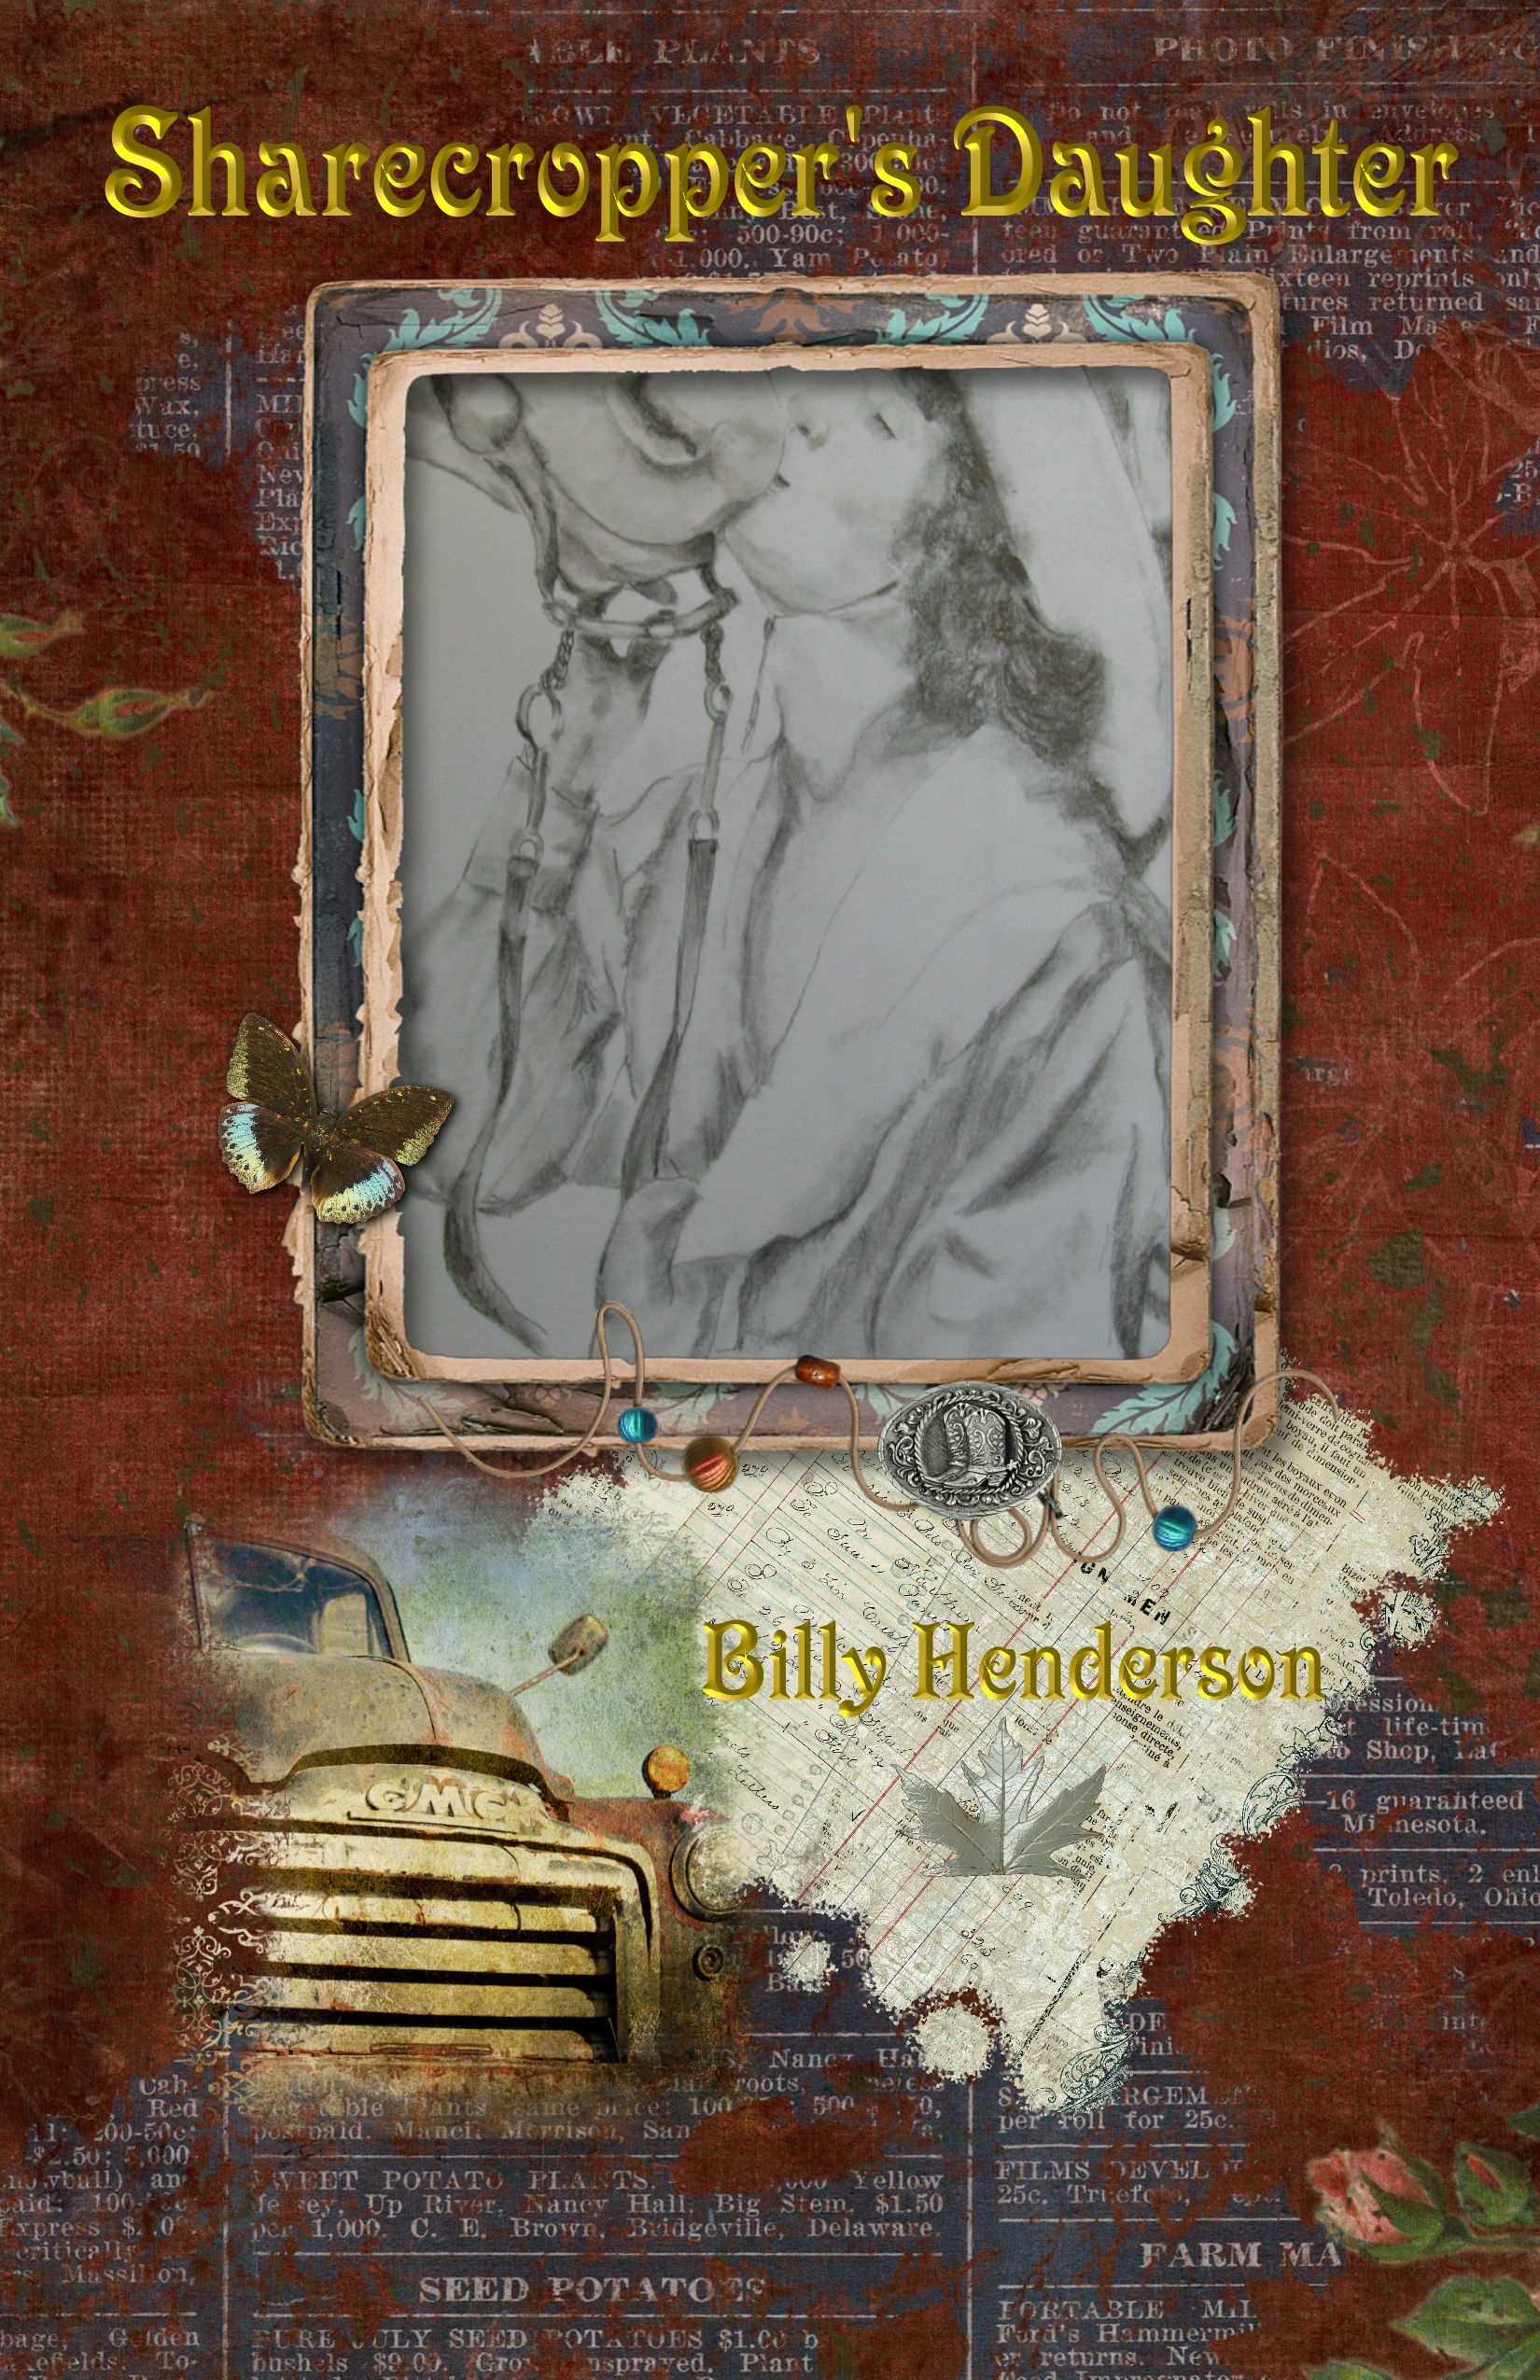 sharecropper's Daughter Front cover